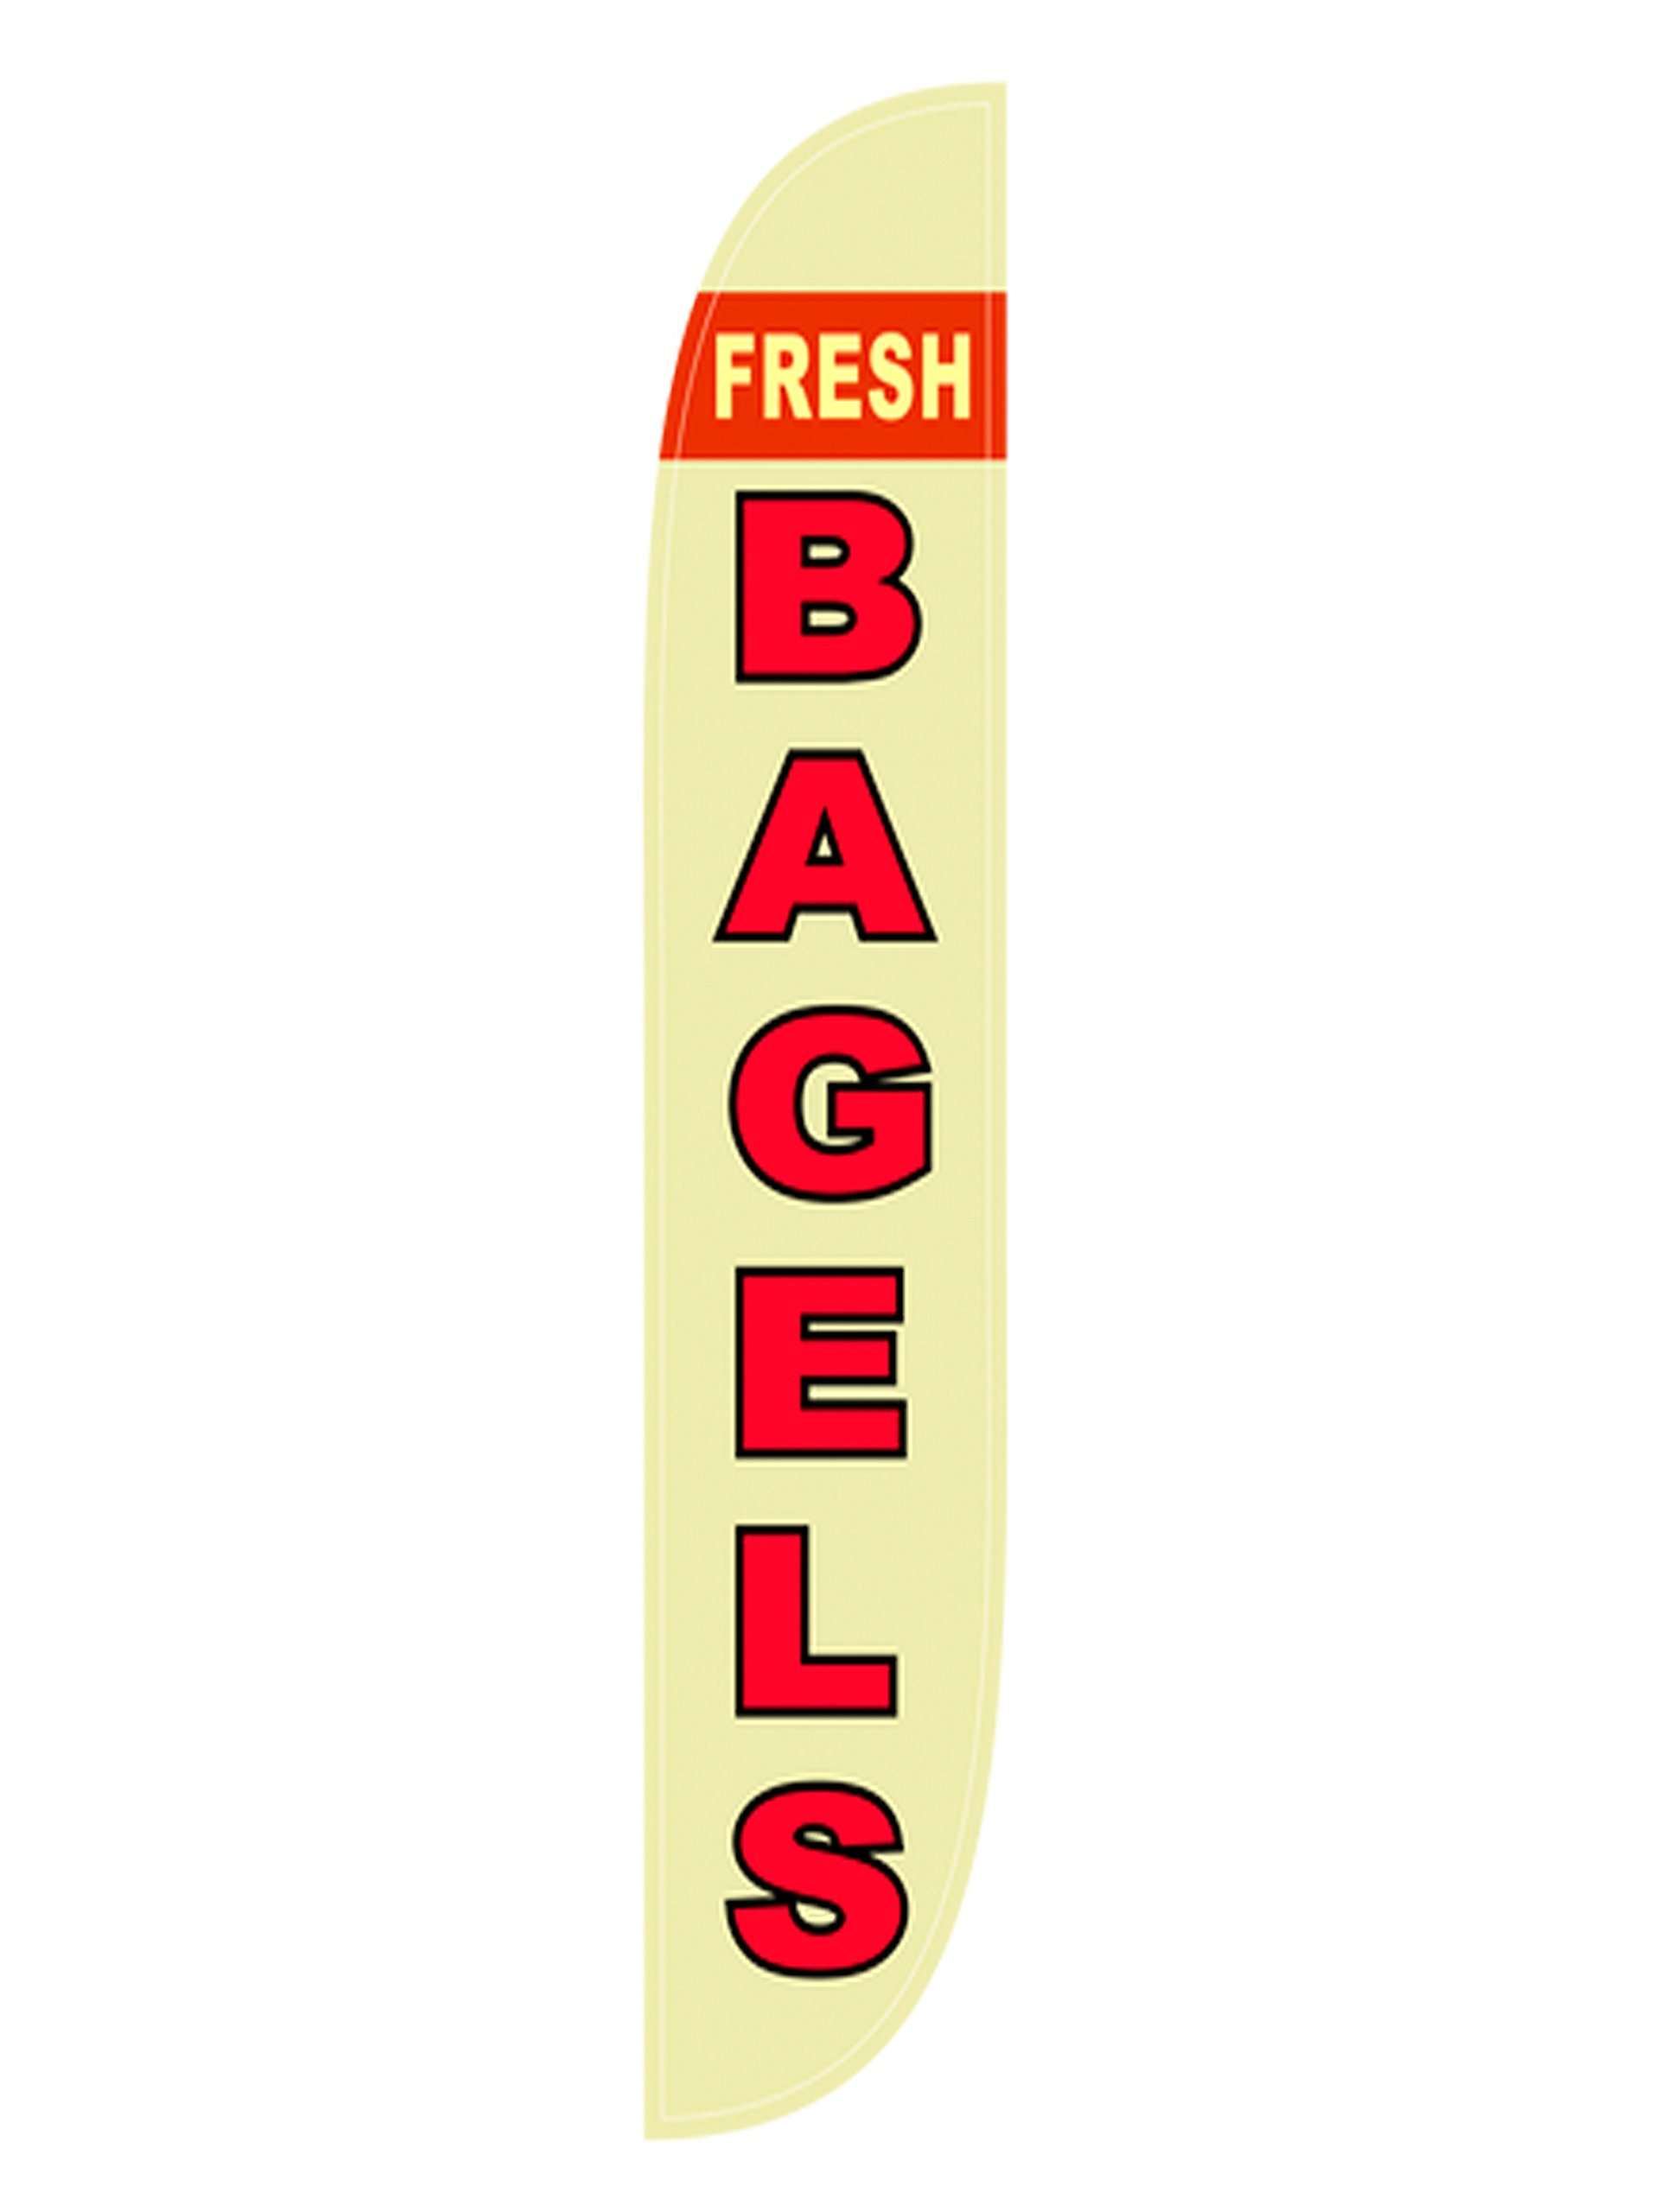 LookOurWay Fresh Bagels Feather Flag Complete Set with Pole & Ground Spike by LookOurWay